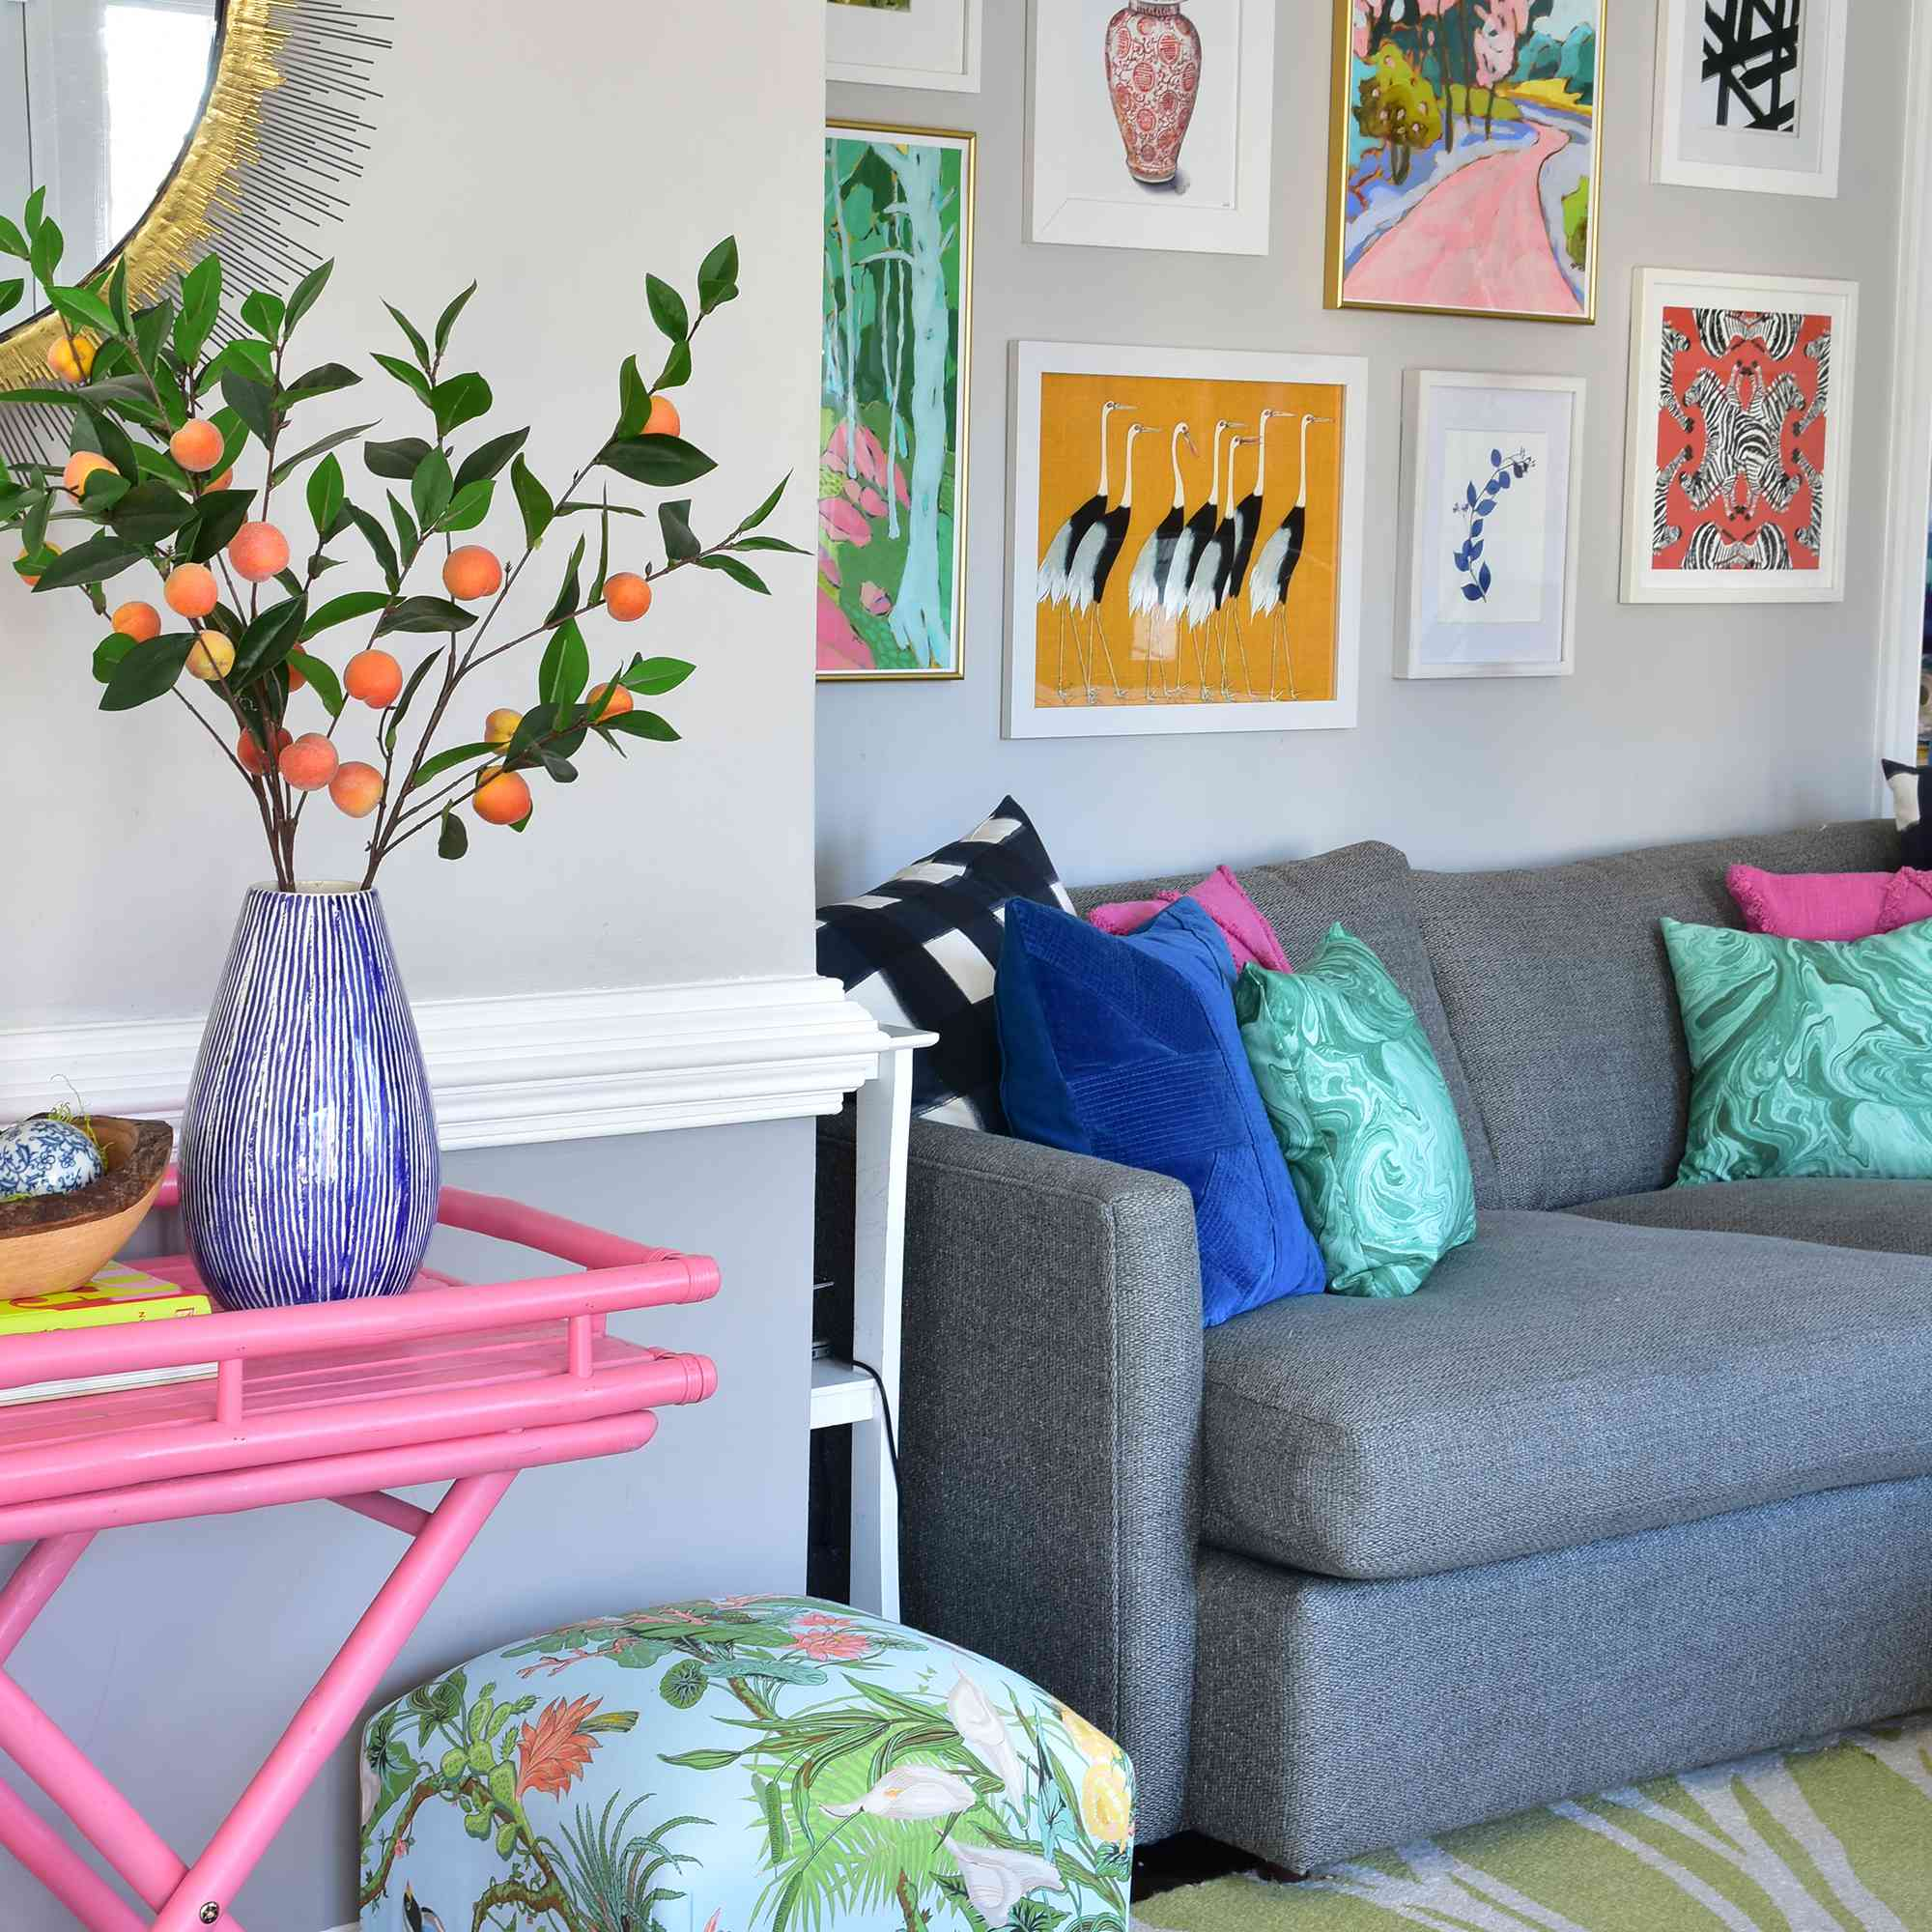 Living room with wall gallery by design blogger Kate Dreyer